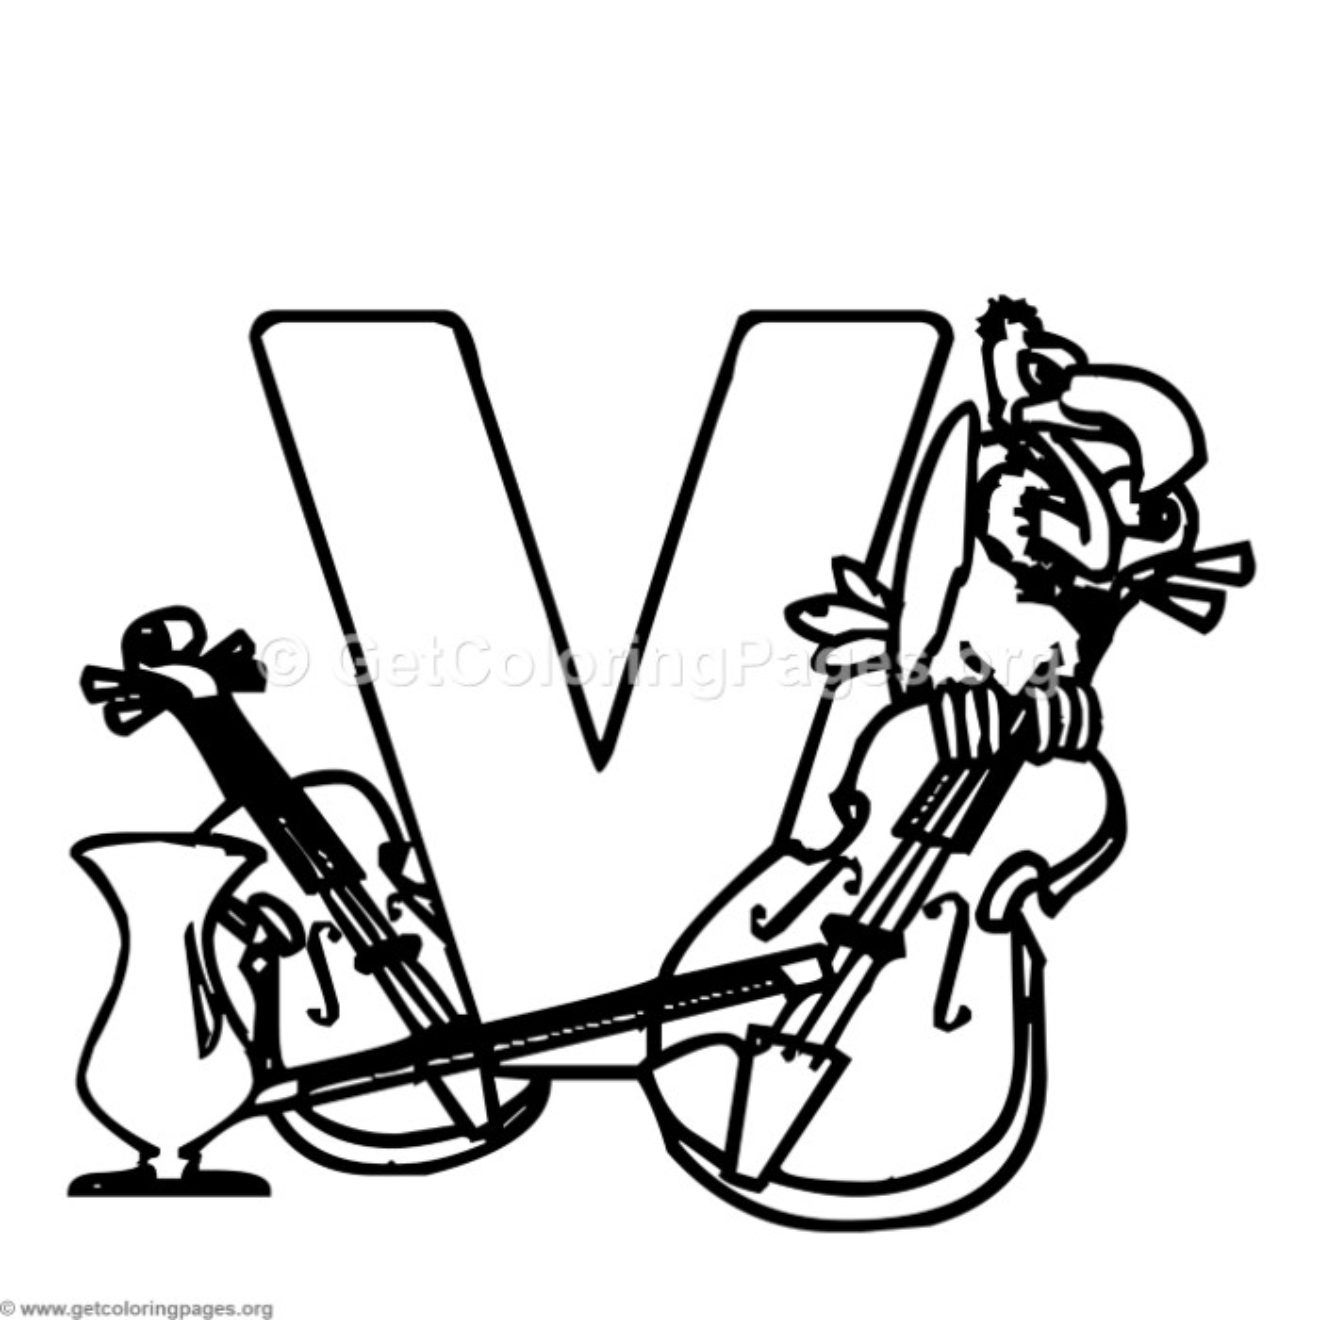 Alphabet Characters Letter V Coloring Pages Getcoloringpages Org